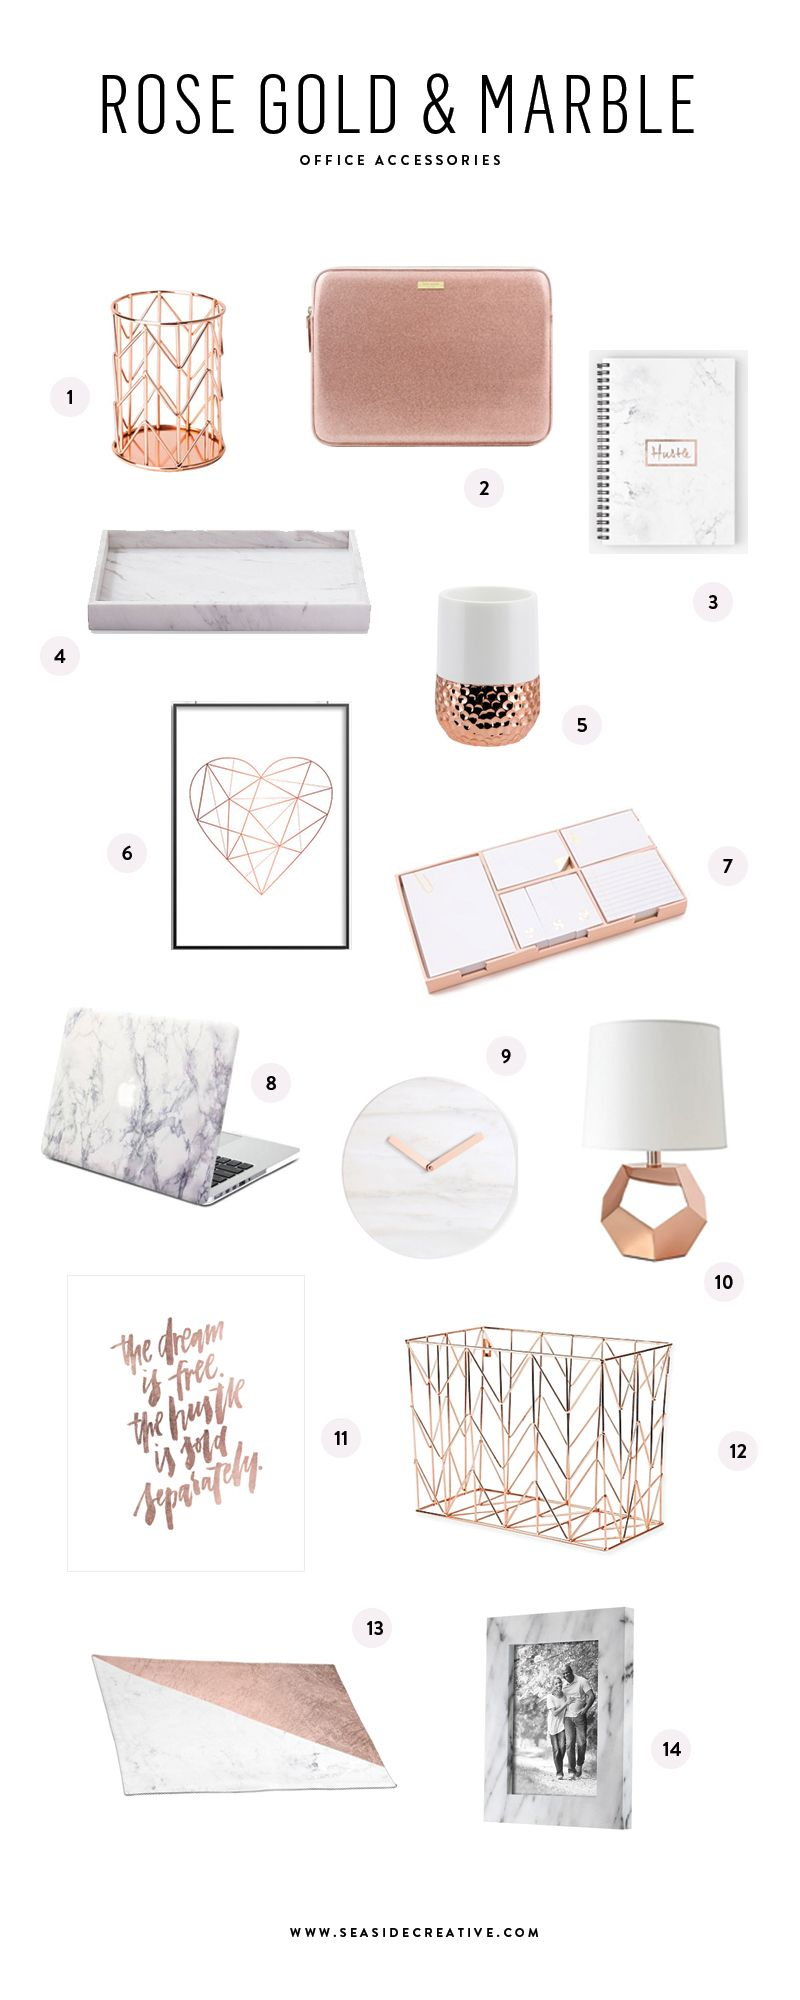 Beautiful rose gold u marble office accessories pencil cup gold